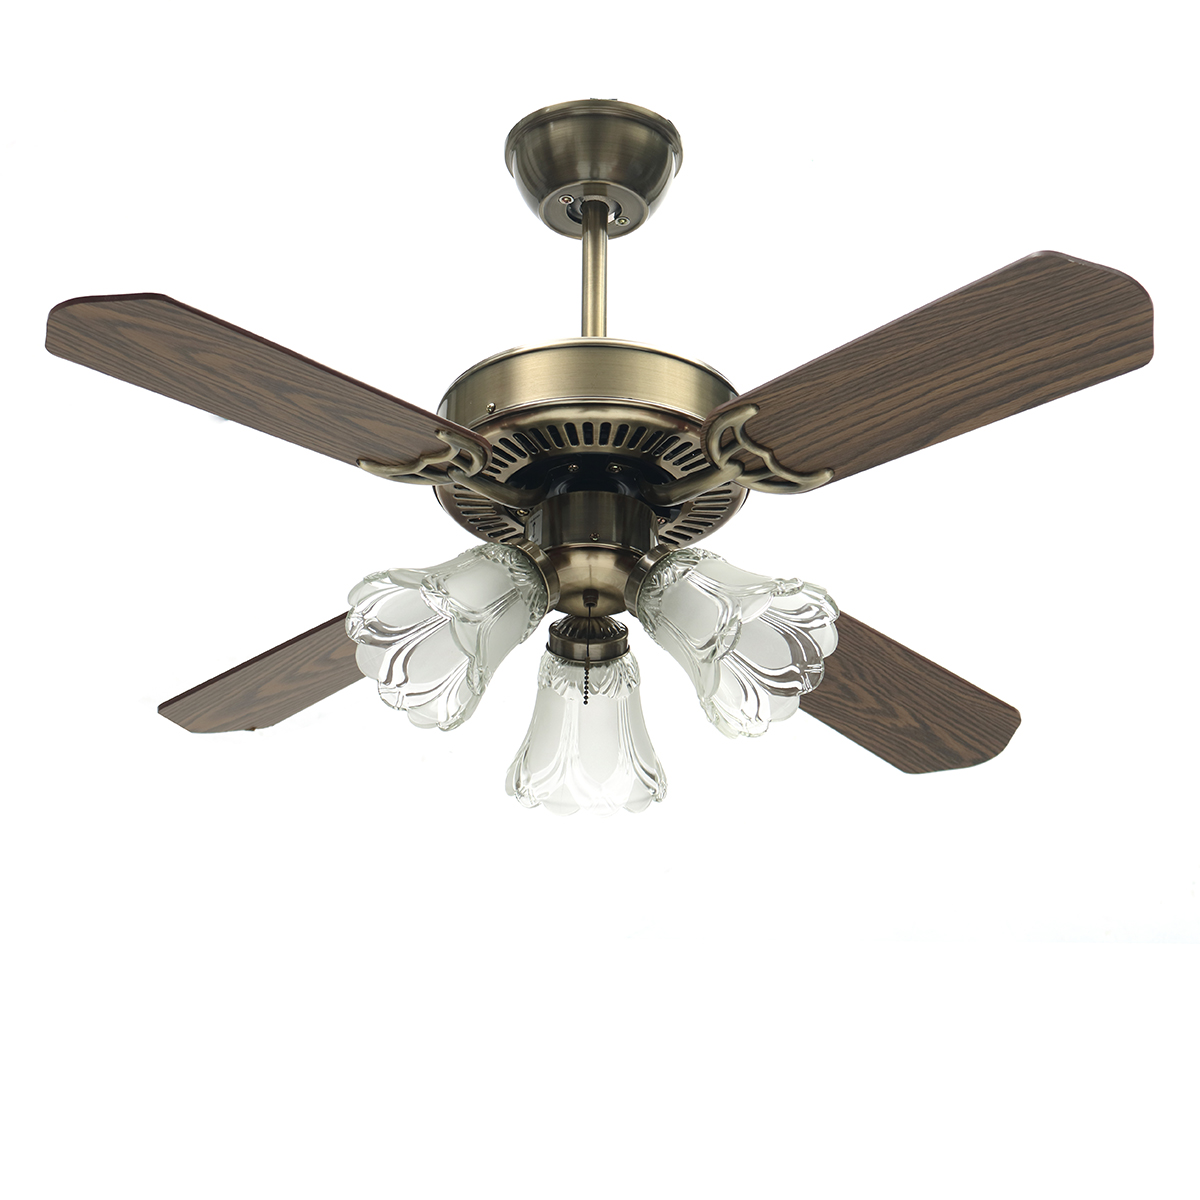 Miisng 36 Inch Led Ceiling Fan E27 Bulb For Living Room Ceiling Fans With Lights Cooling Fan